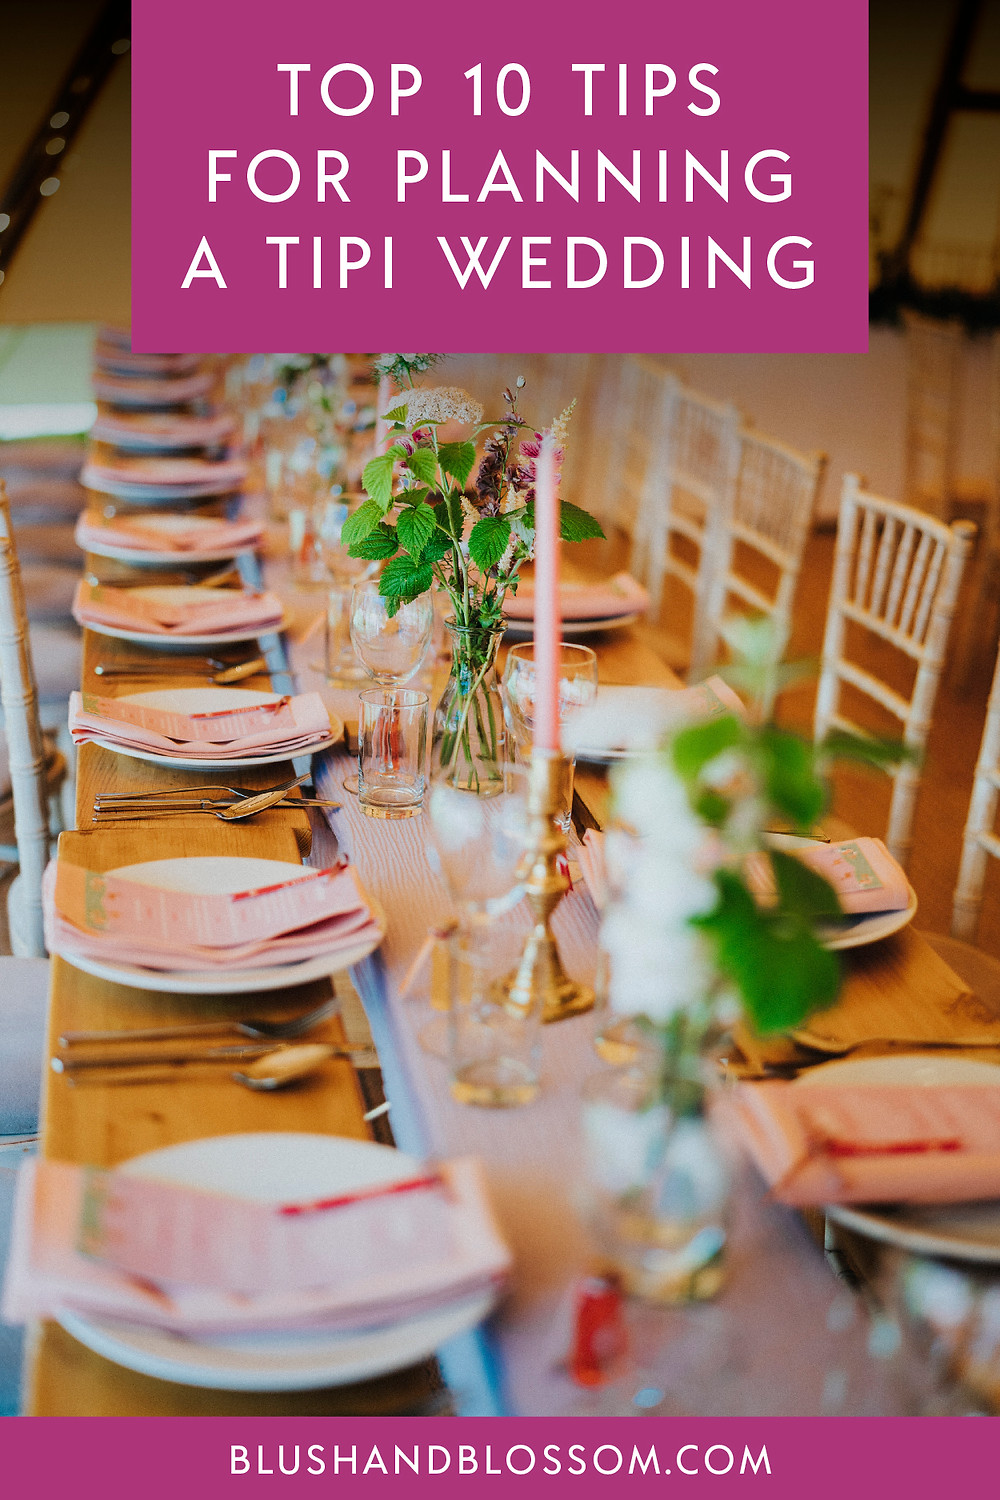 Top tips for planning a tipi wedding including suppliers, venues, stationery and budgets